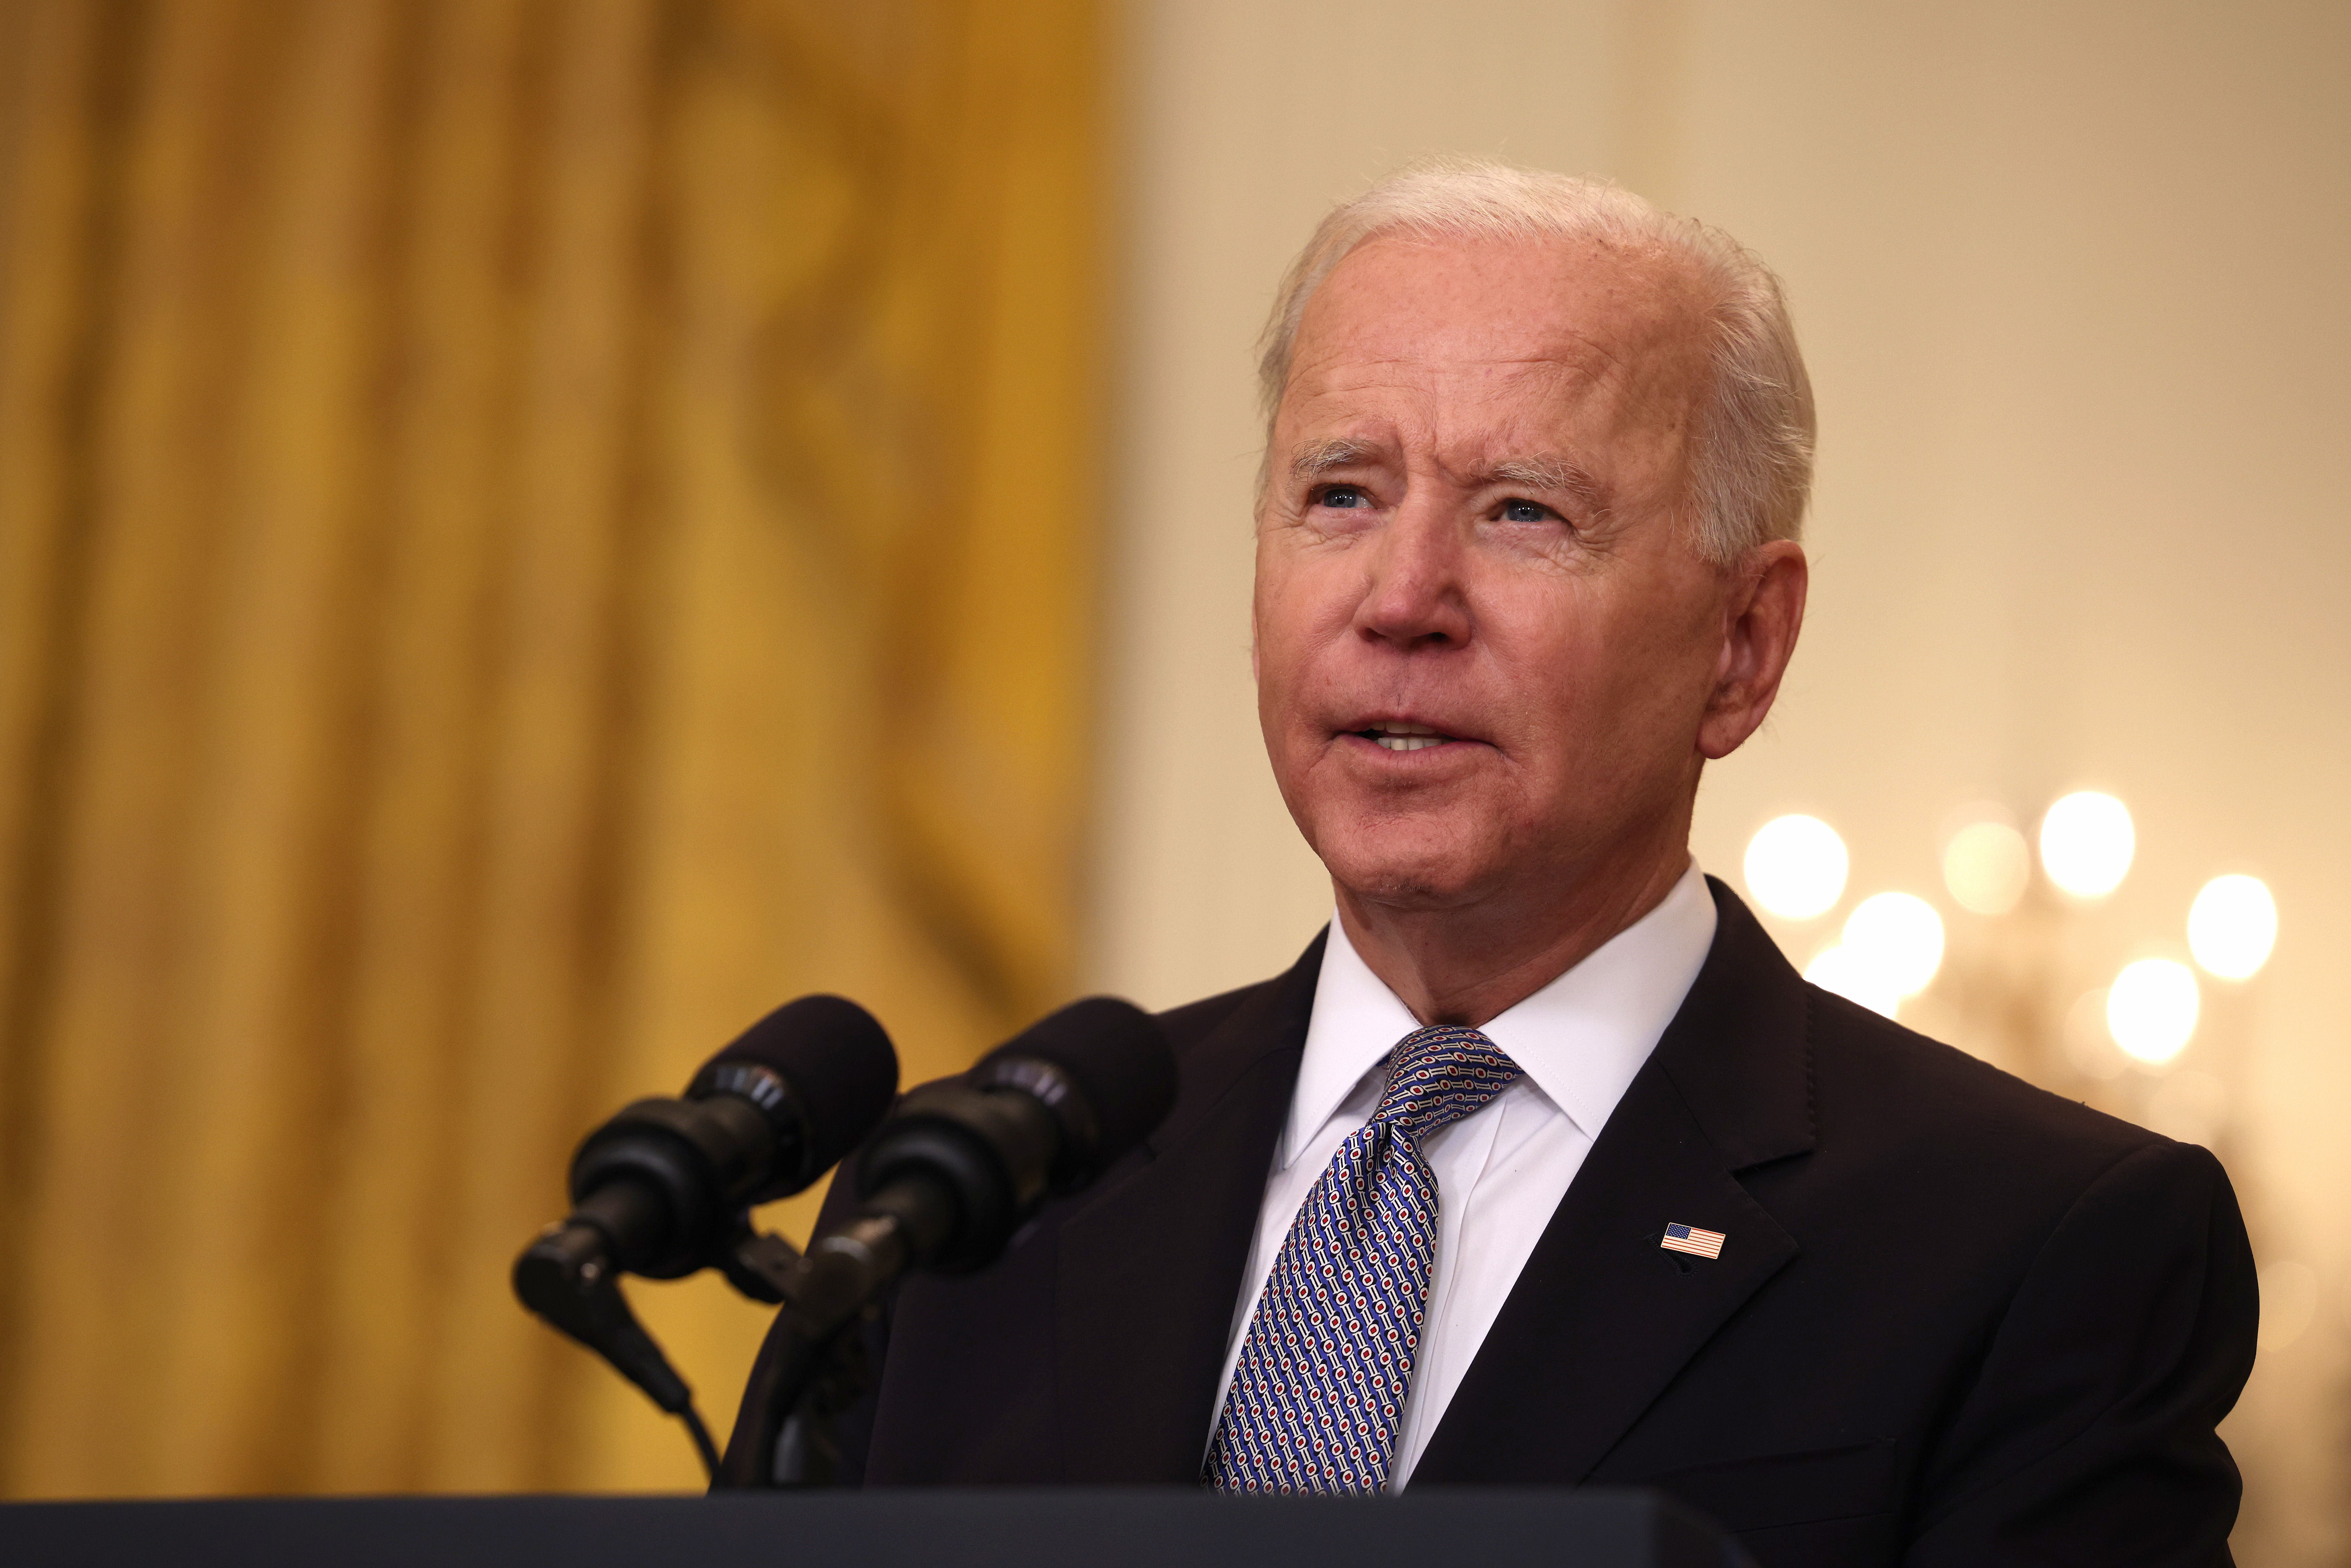 U.S. President Joe Biden gives an update on his administration's COVID-19 response and vaccination program in the East Room of the White House on May 17, 2021 in Washington, DC.